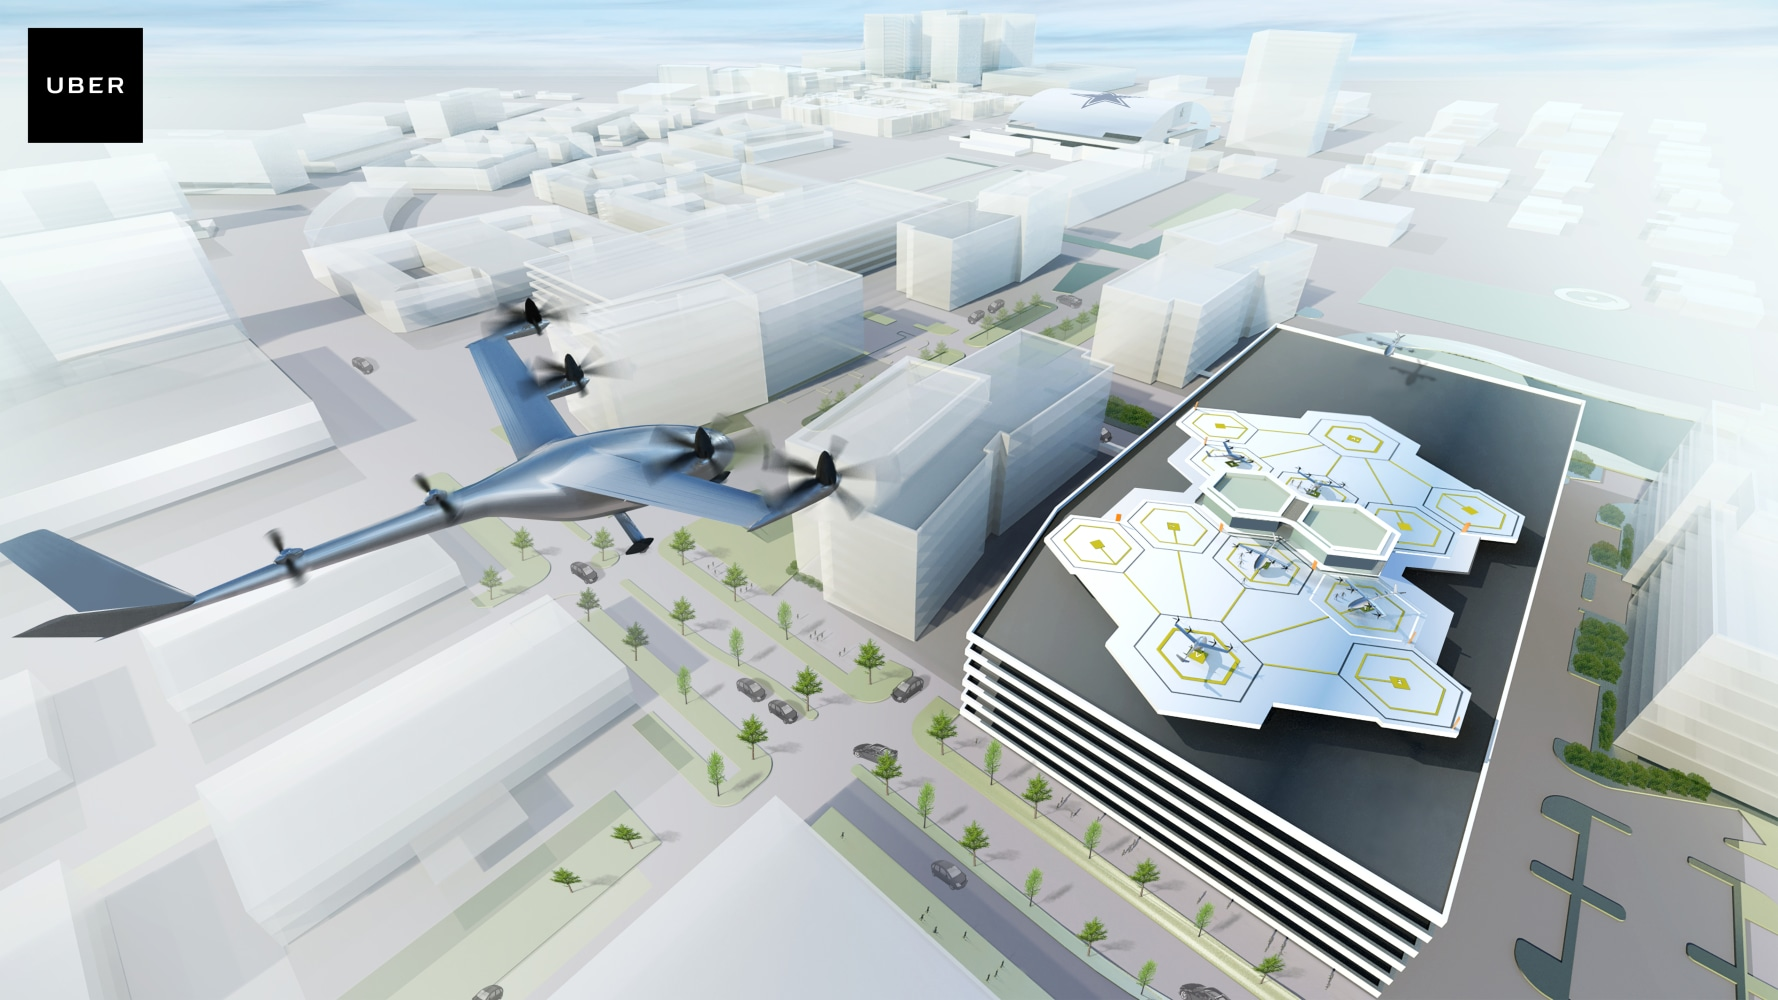 uber promises flying taxis dallas